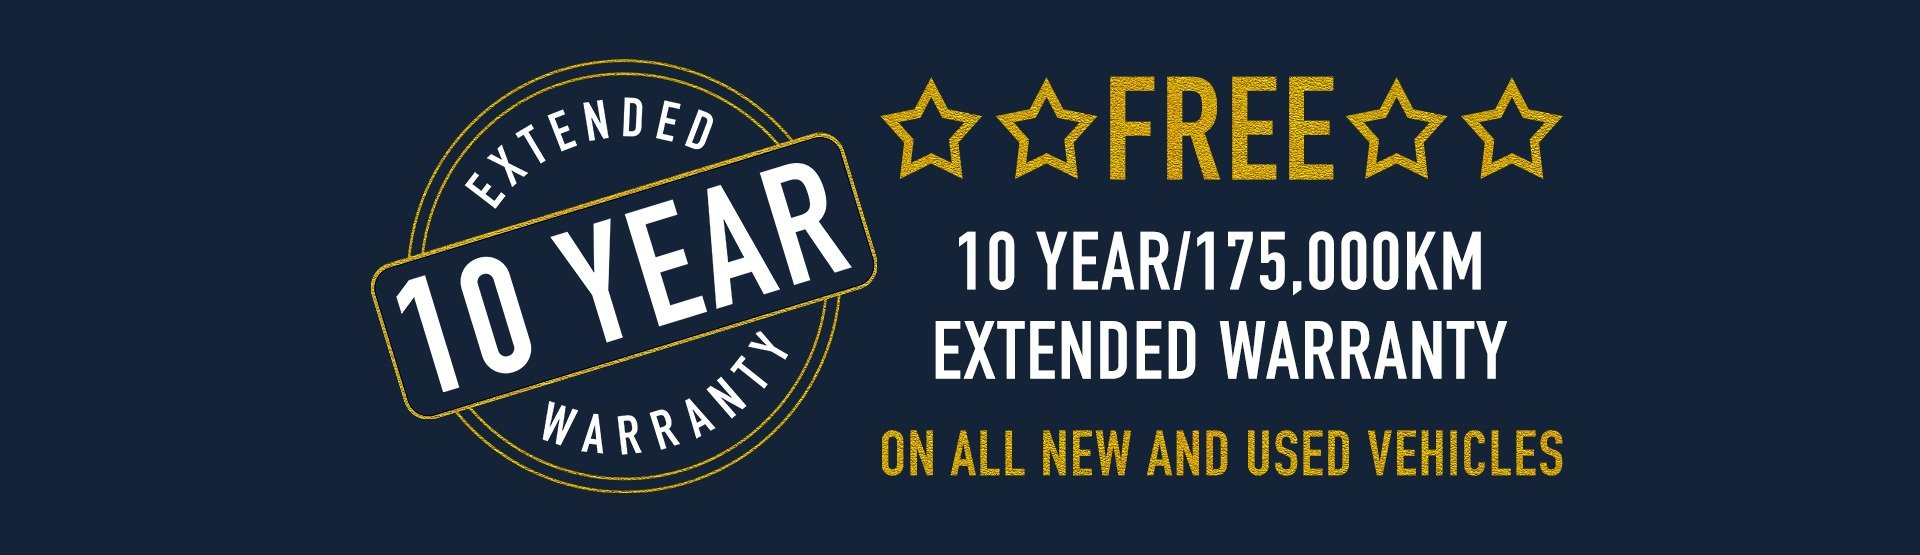 Free 10 year/175,000km extended warranty